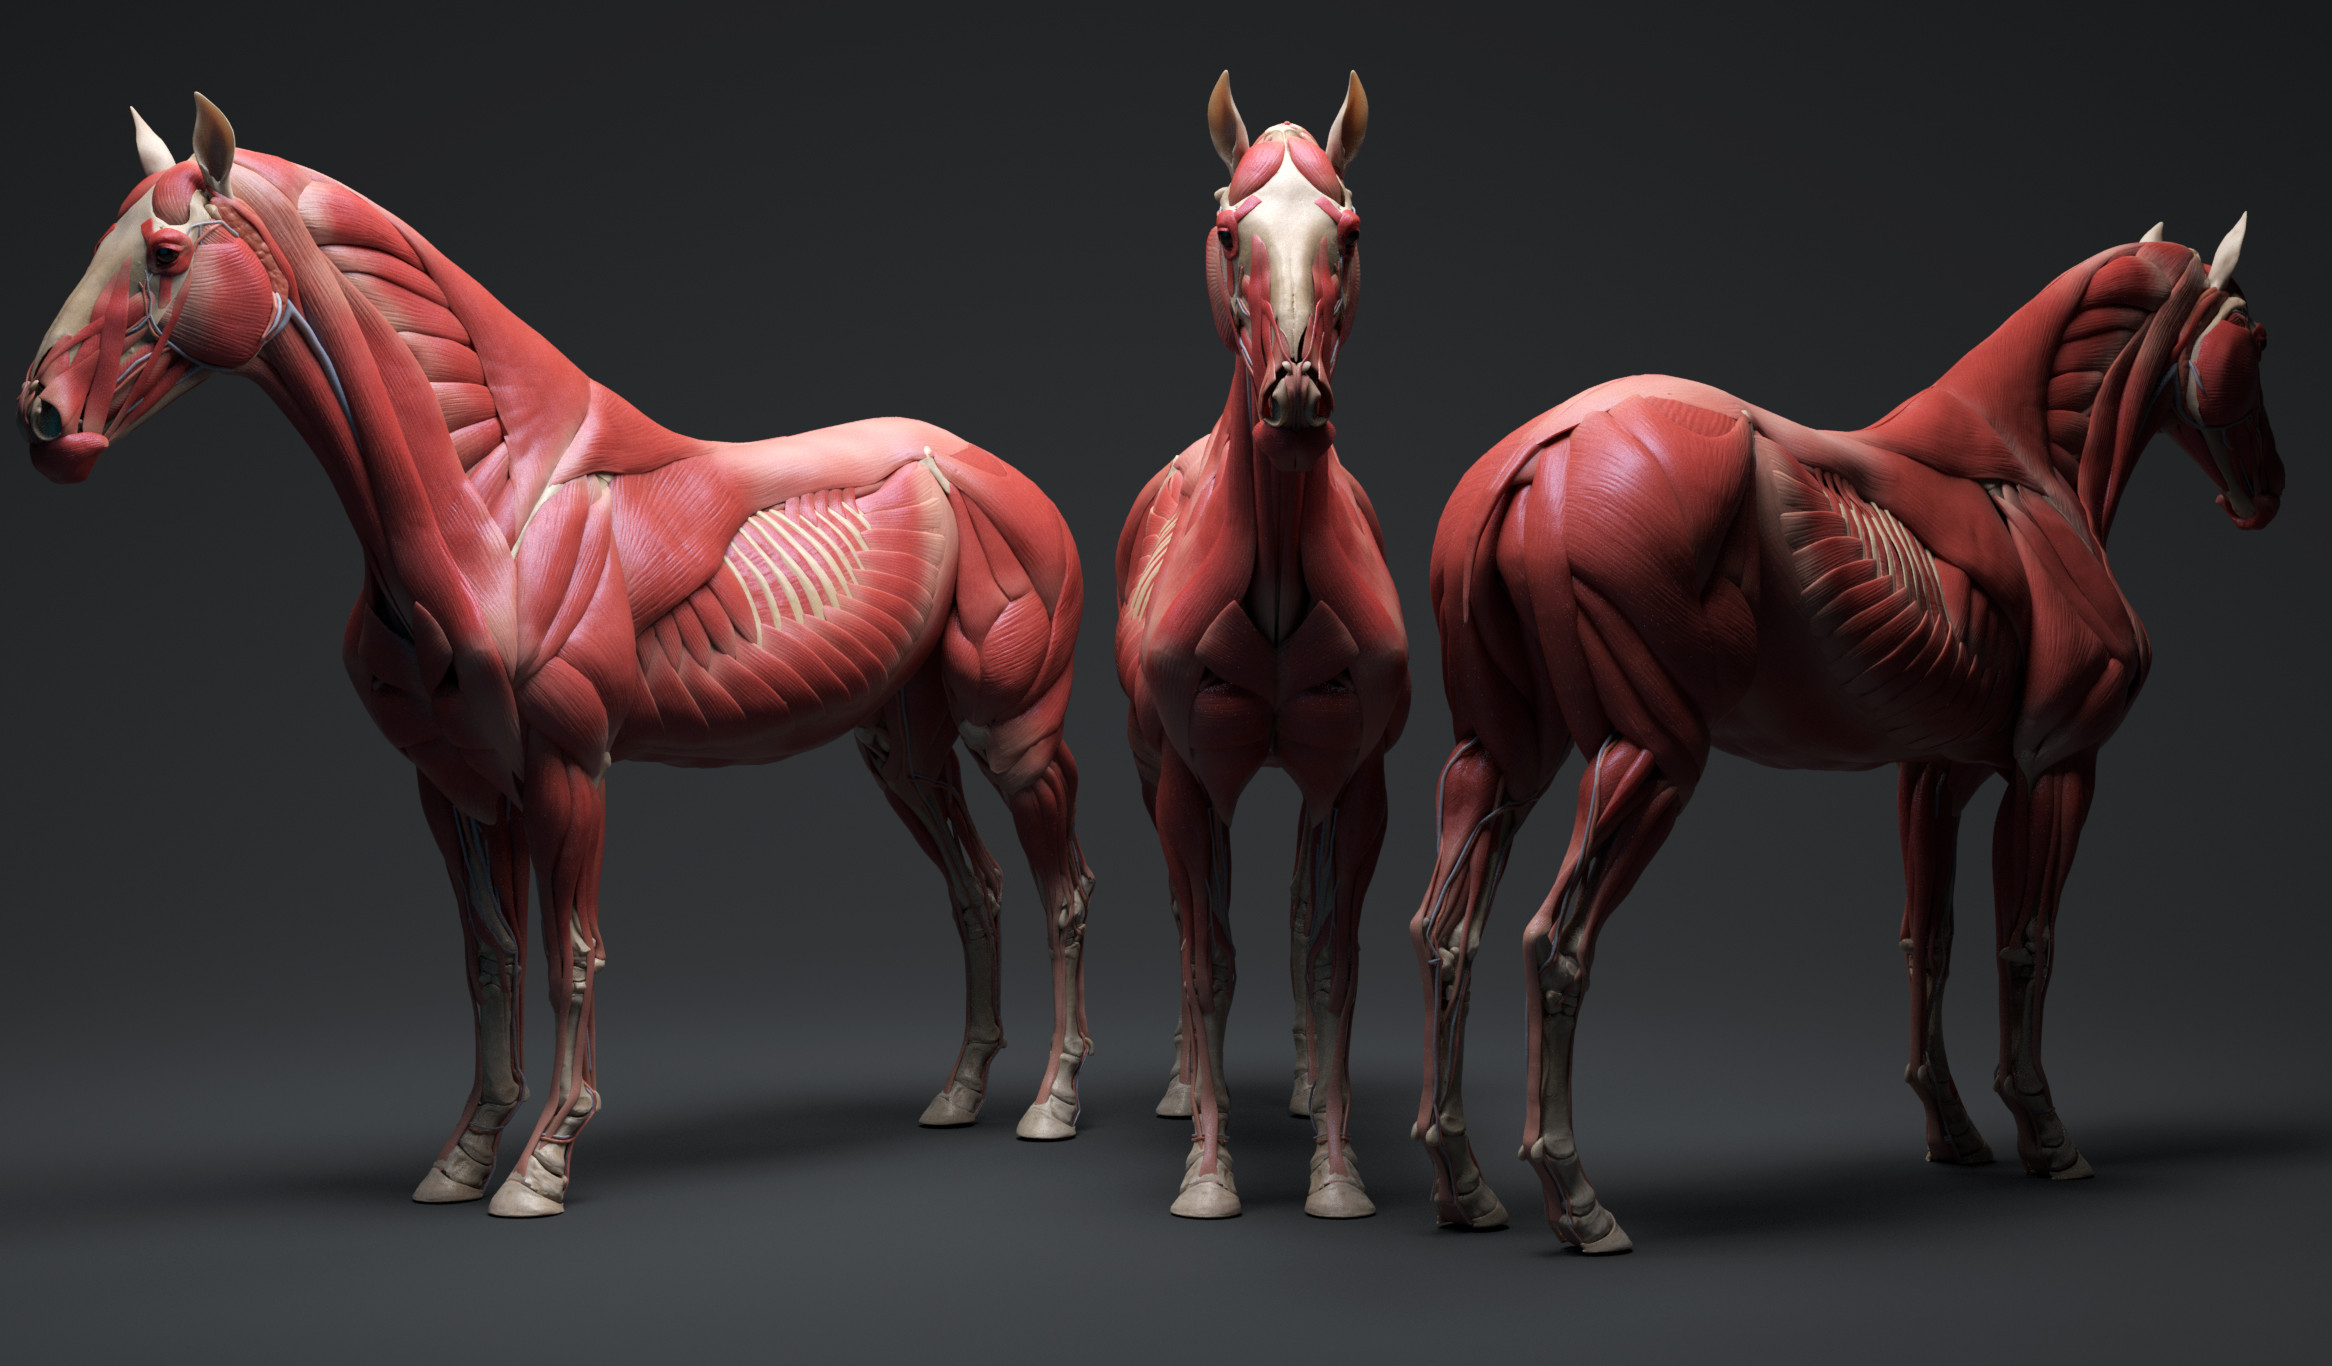 Horse ecorche, now available on 3dscan store. Follow the link: https://www.3dscanstore.com/ecorche-3d-models/horse-ecorche-3d-model